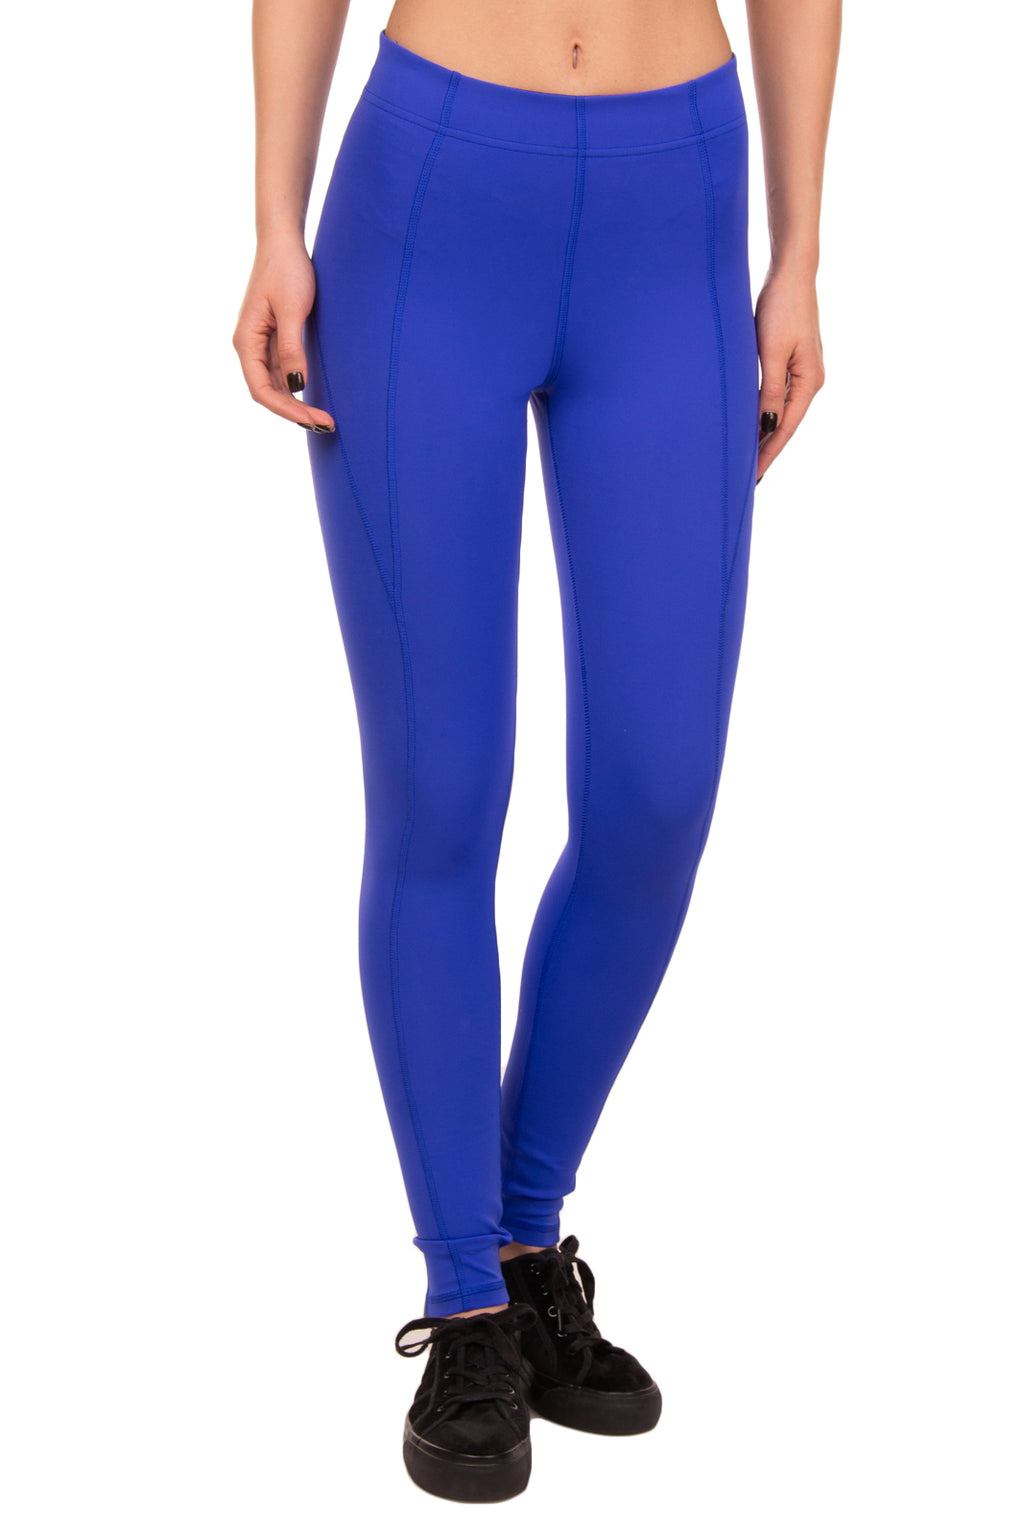 PURITY ACTIVE Leggings Size XS Stretch Blue Elasticated Waist Coated Logo